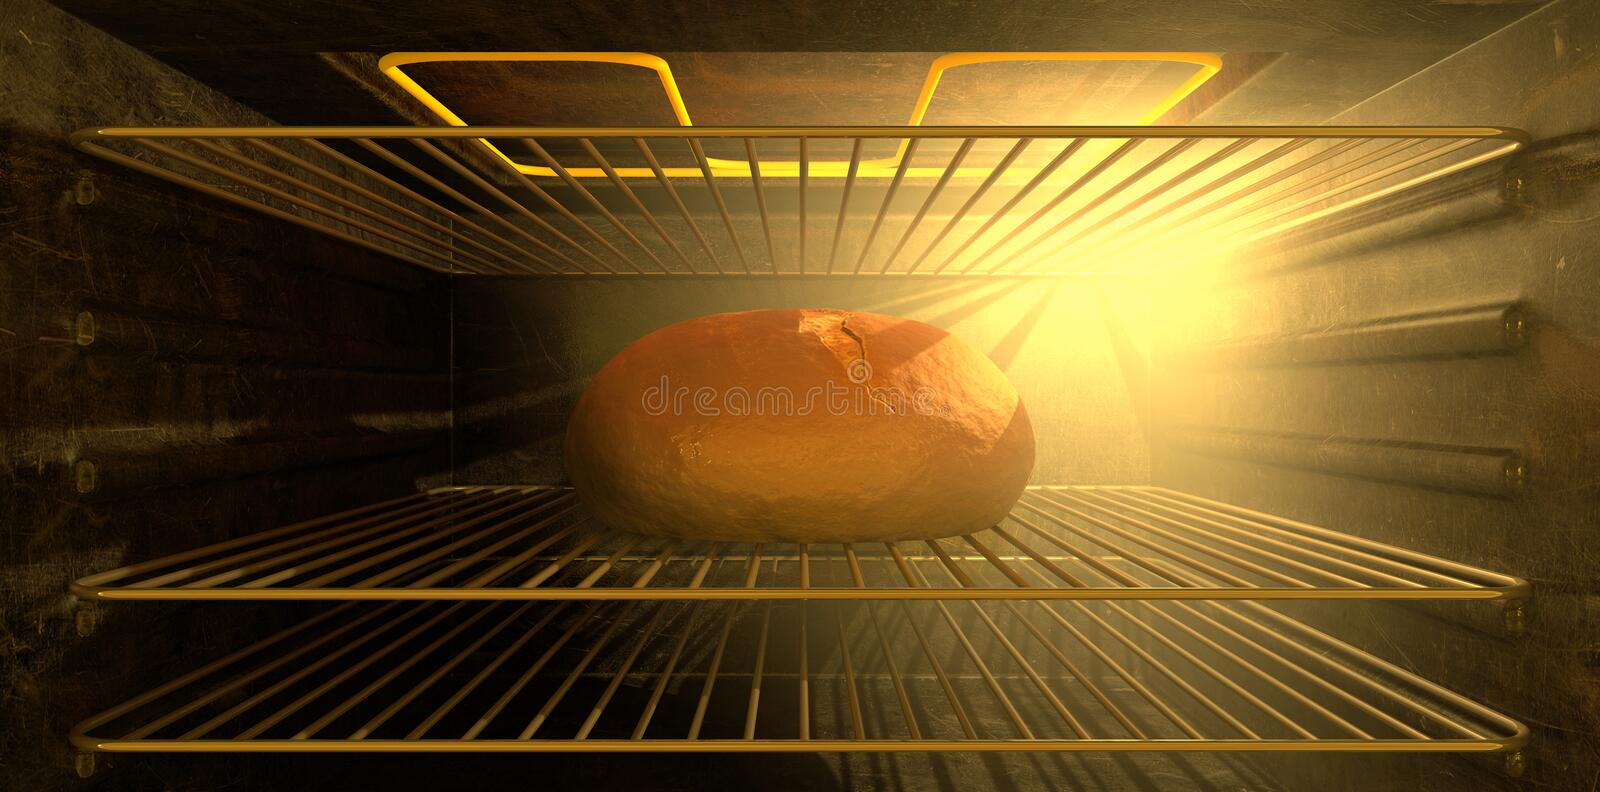 Download A Bun In The Oven stock illustration. Image of oven, shelves - 25459648